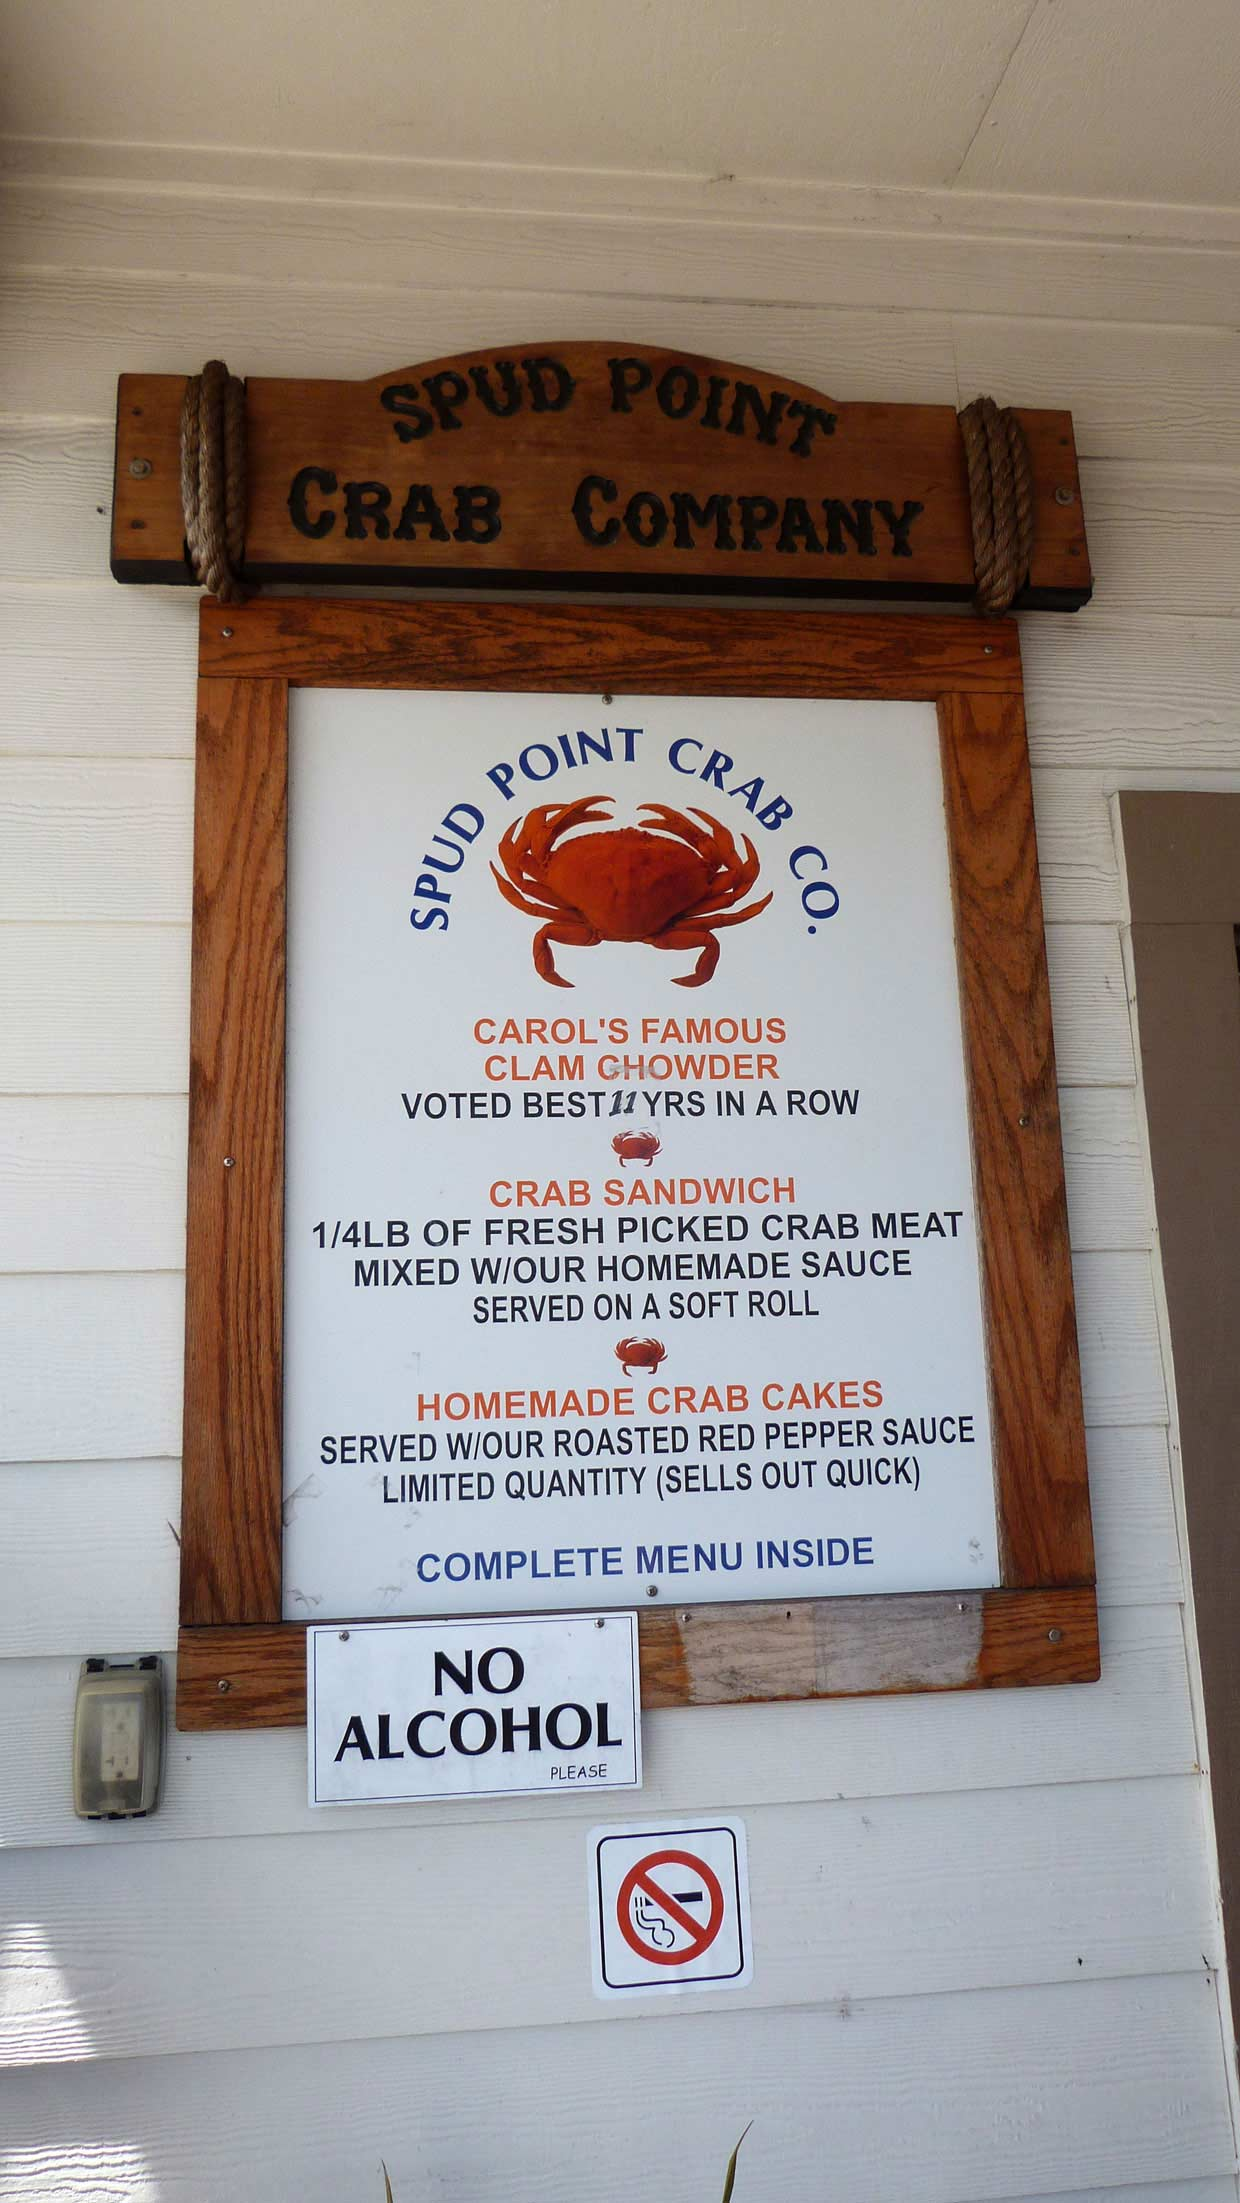 15.-Lunchstop California – A Trip Out To Bodega Bay